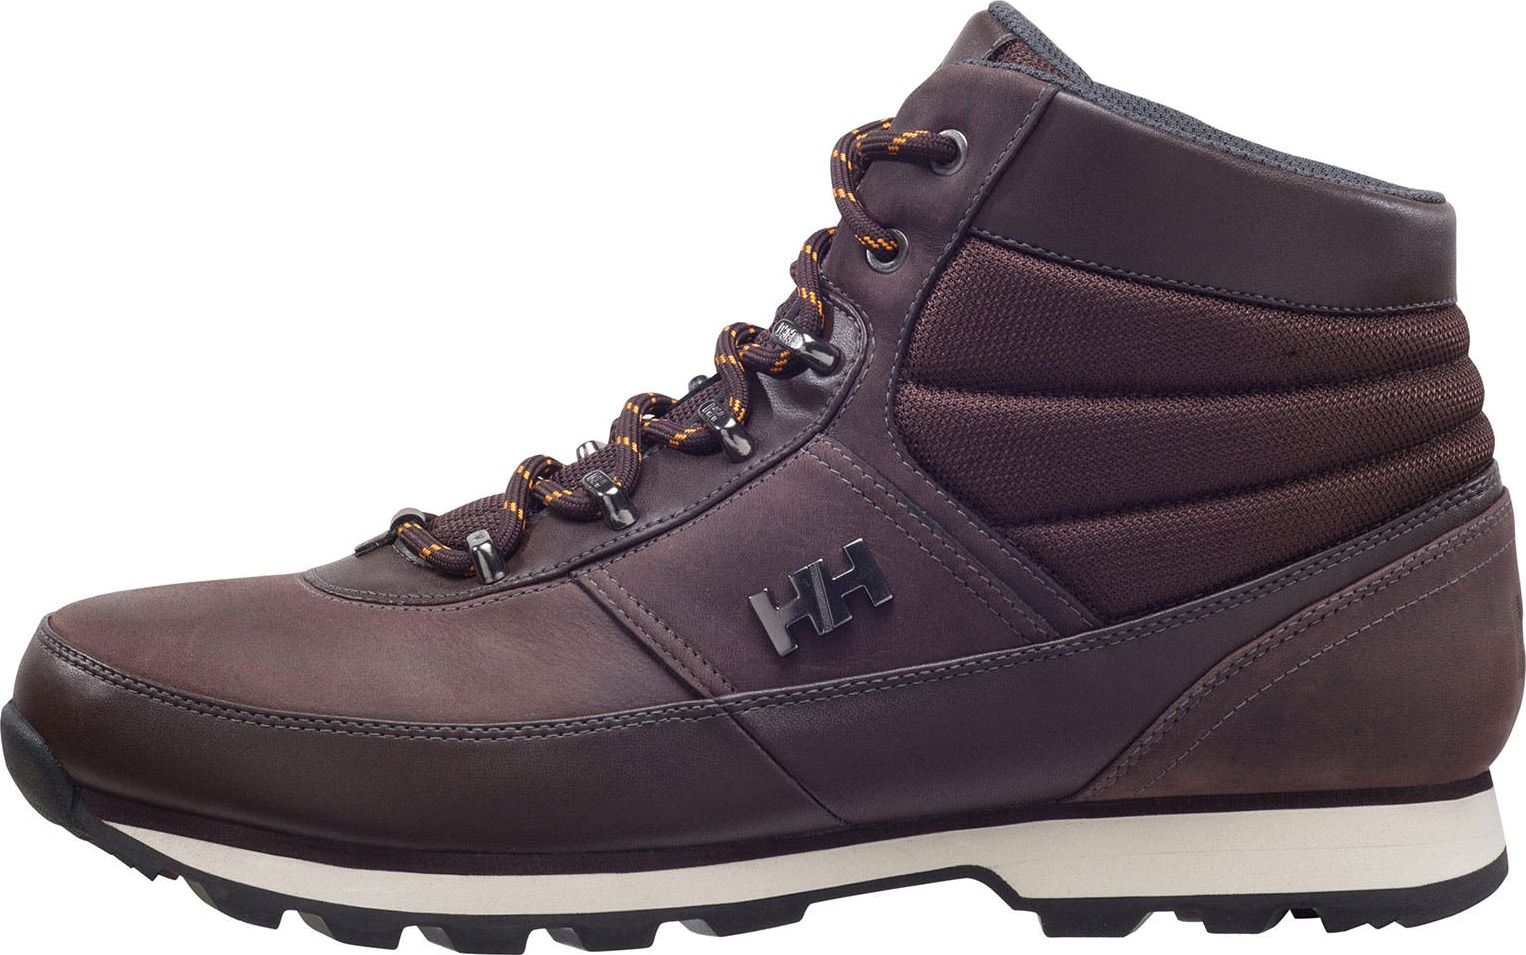 HELLY HANSEN Woodlands Coffee Bean/Natura/Black 45